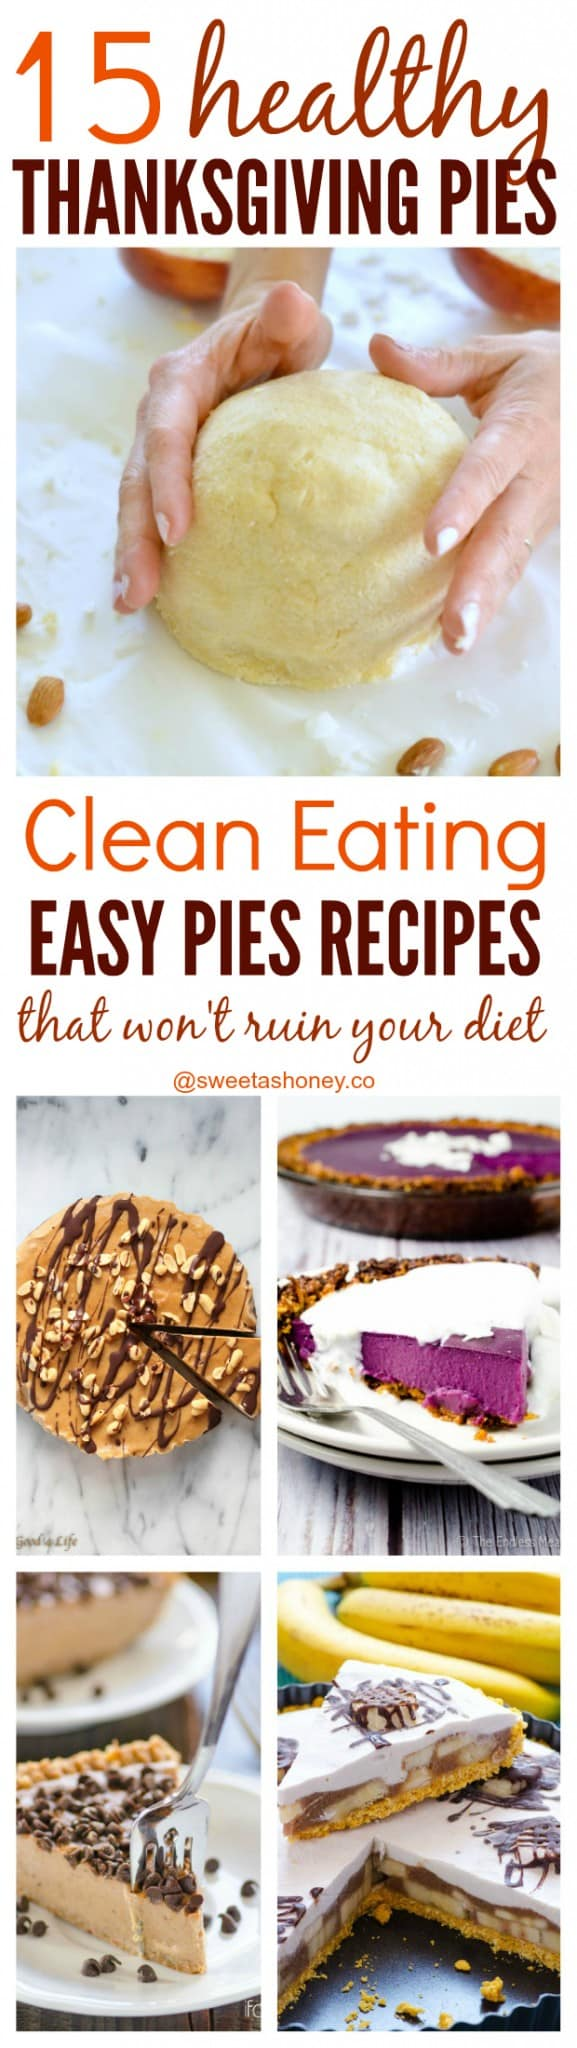 healthy thanksgiving pies recipes easy clean eating